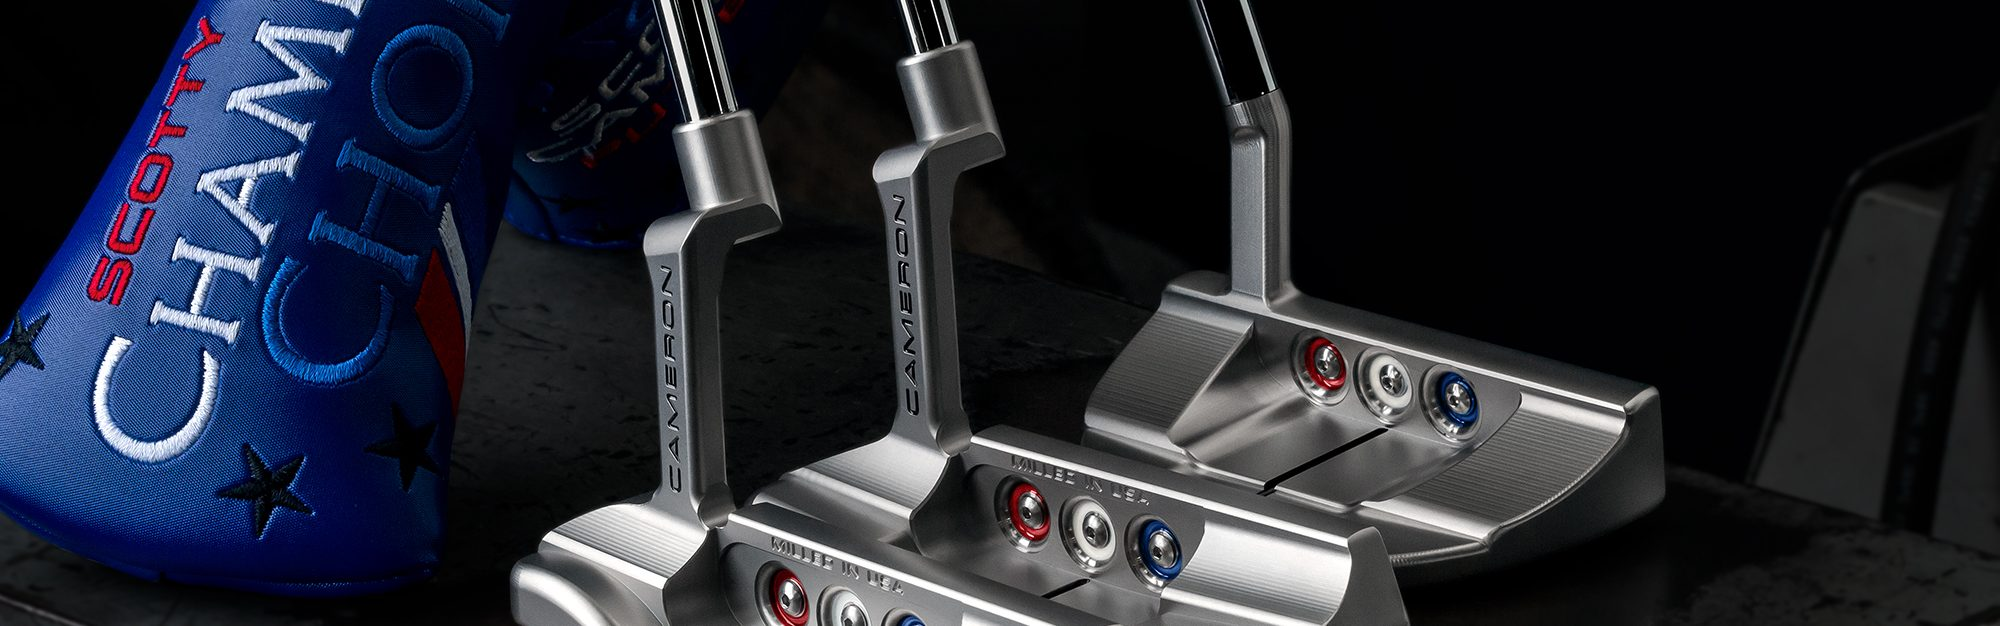 Say hello to Scotty Cameron's Champions Choice putters – a classic look with a modern twist